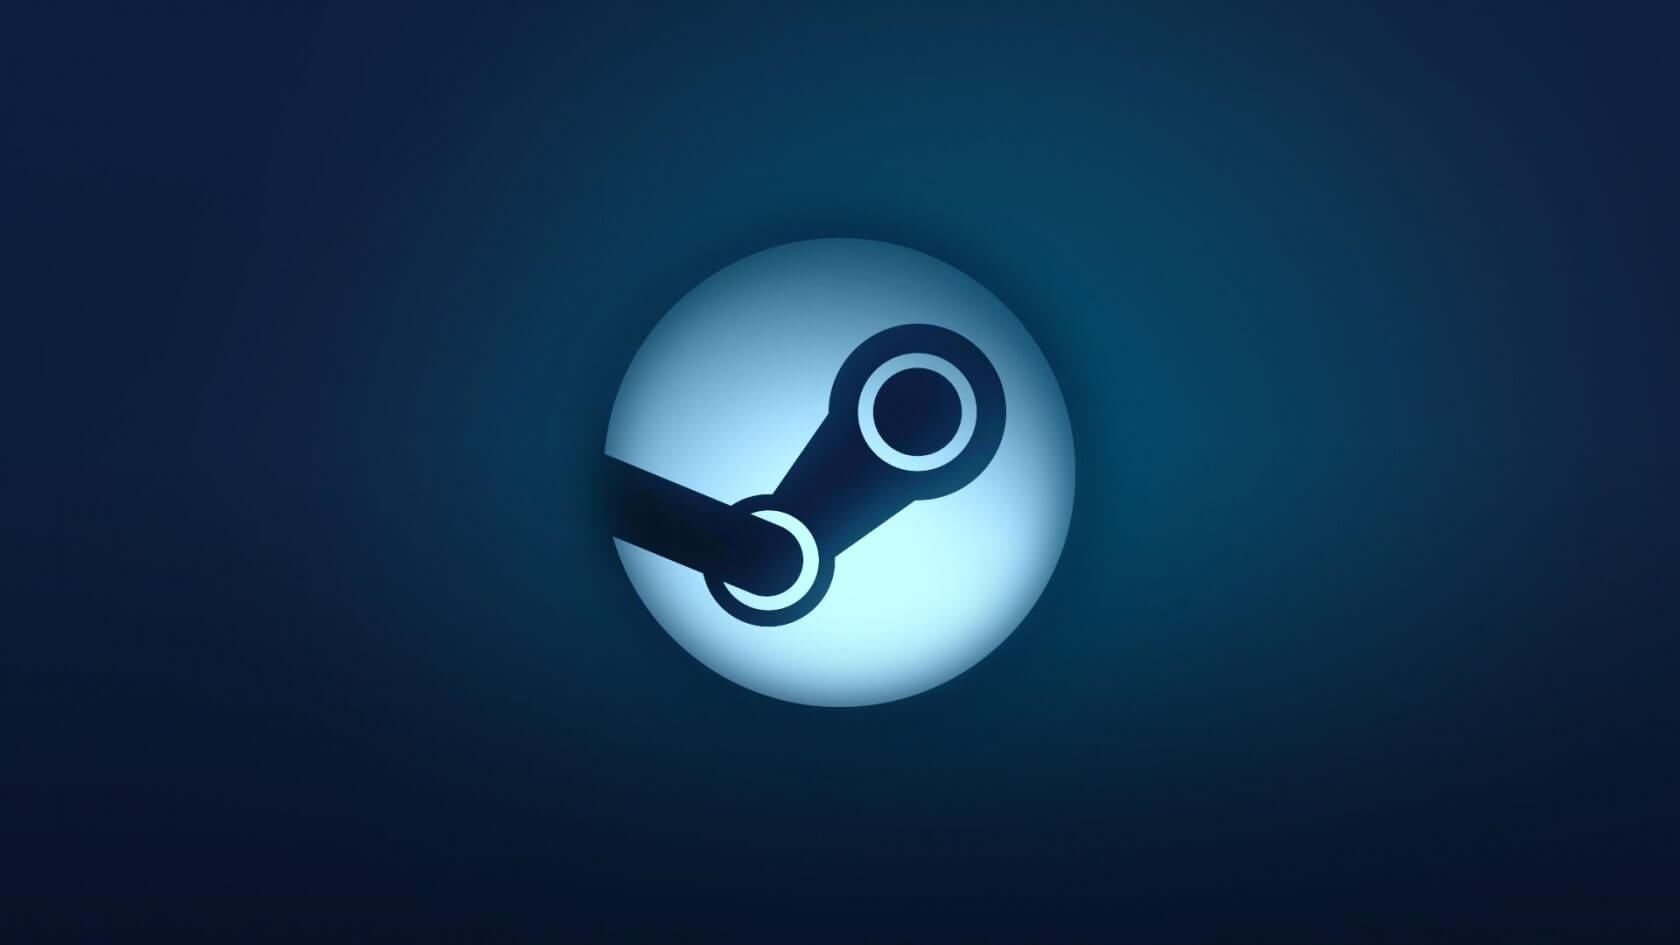 Steam Labs launches as a testbed for new Steam features